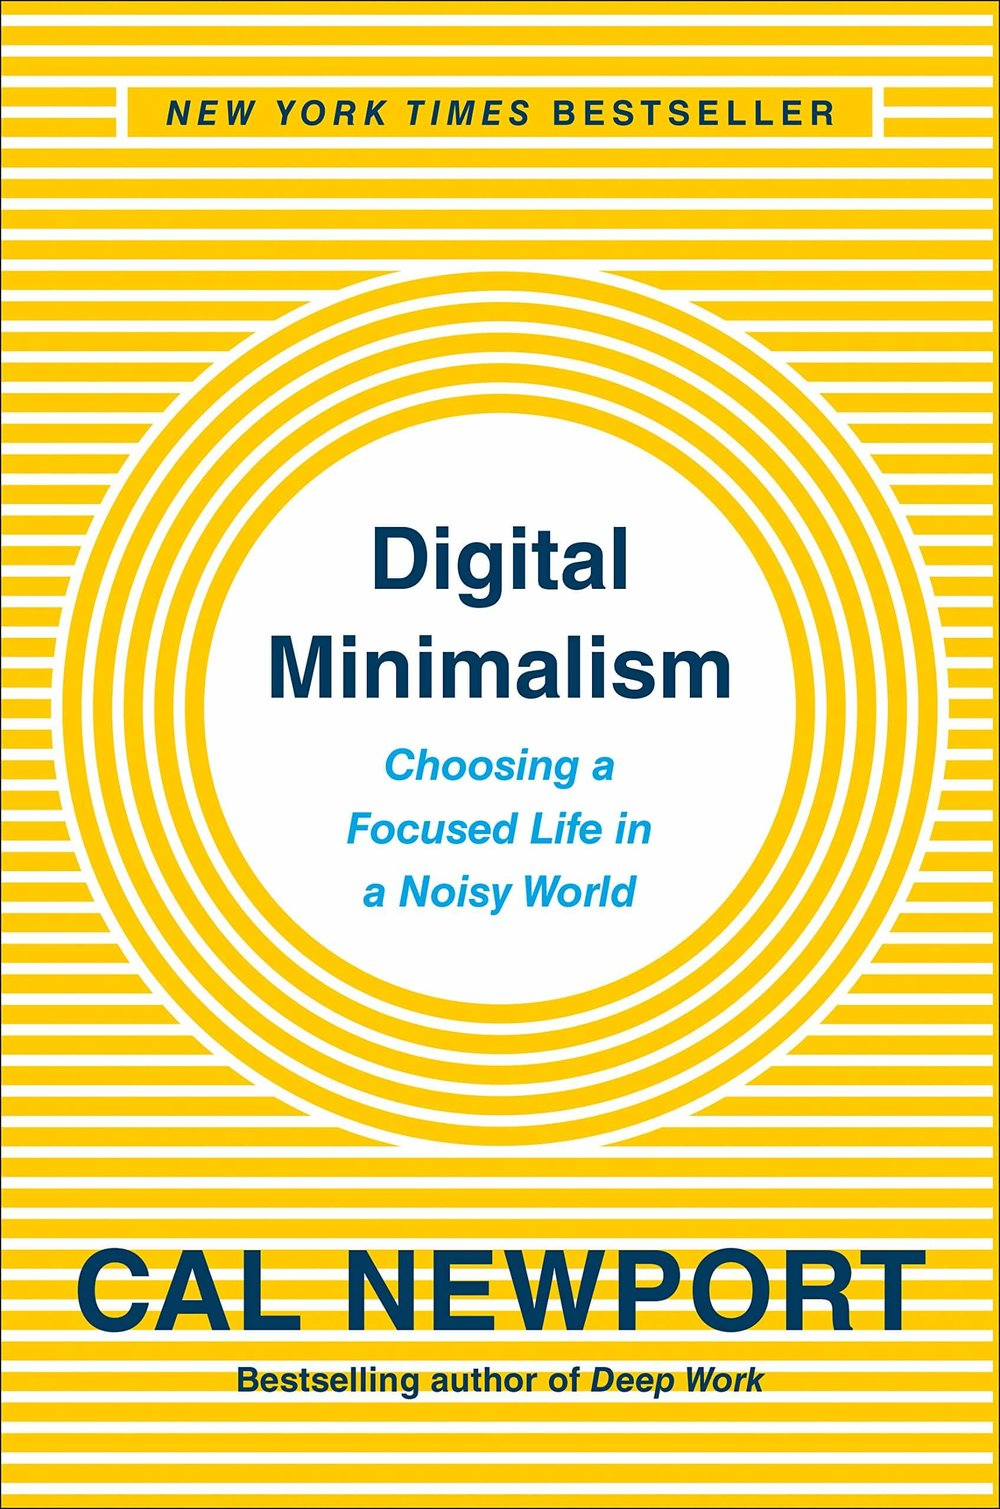 digital-minimalism-cal-newport-book-cover.jpg